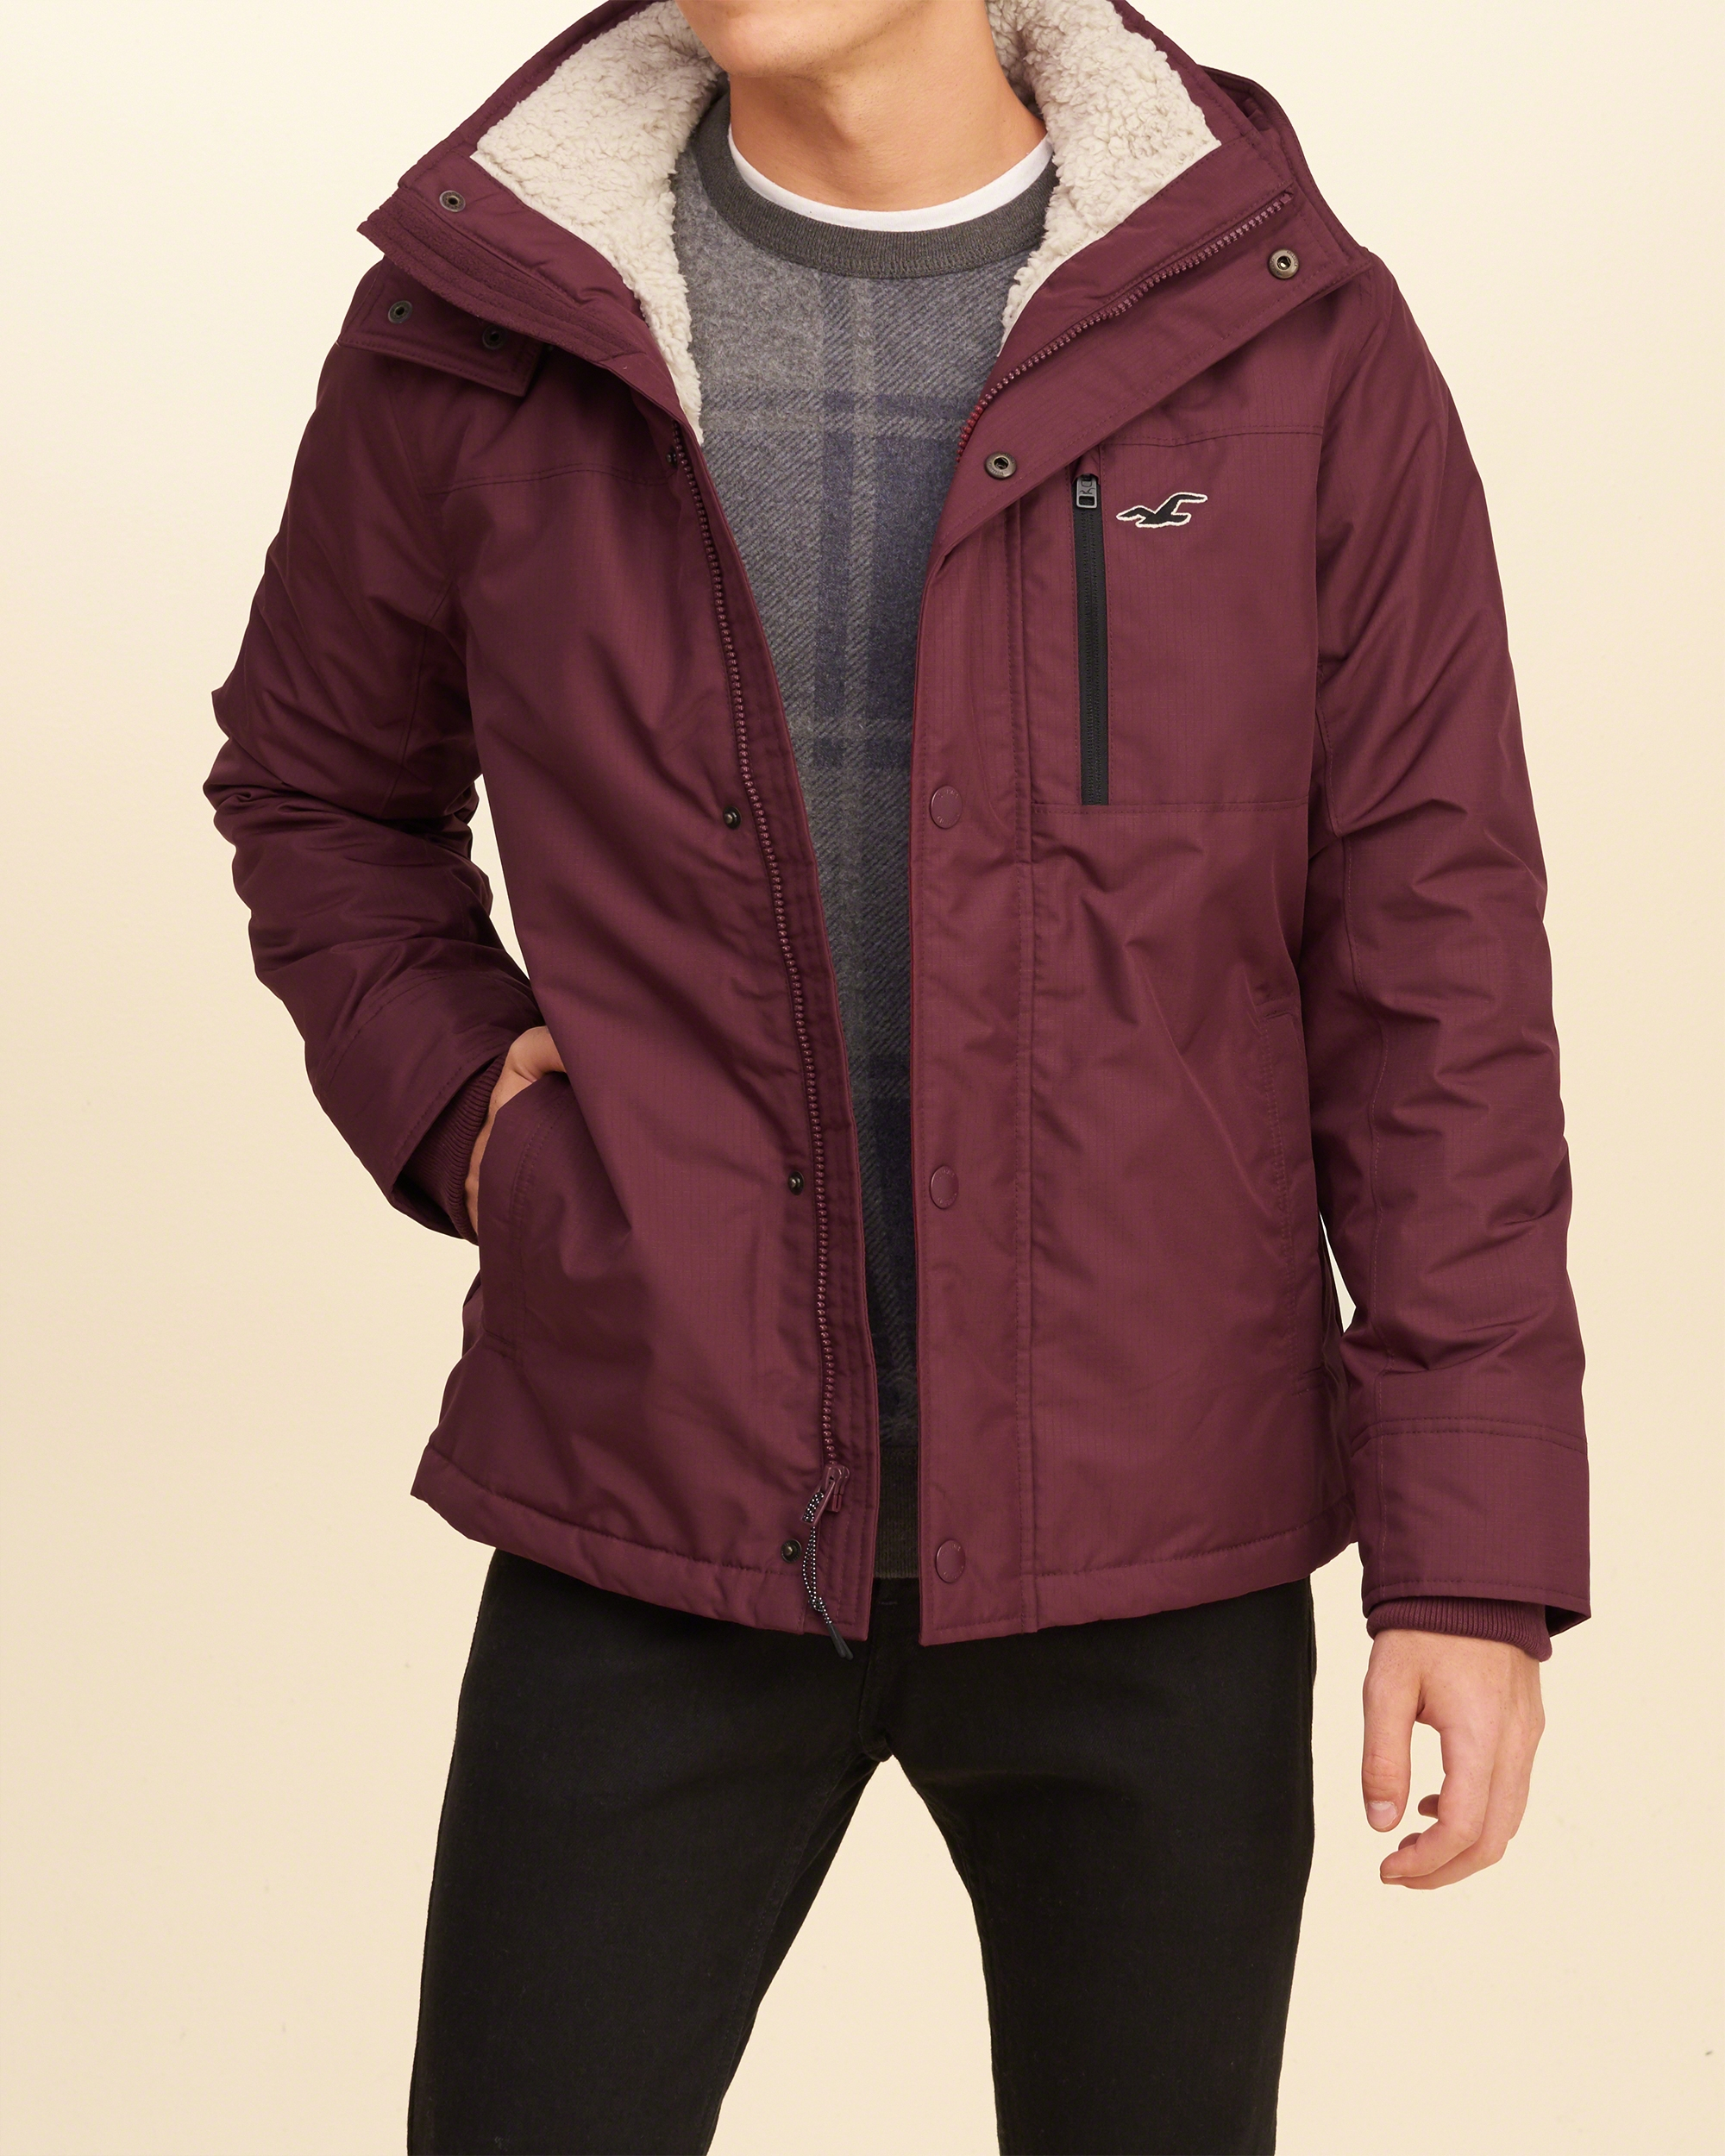 Hollister Synthetic All-weather Sherpa Lined Jacket for Men